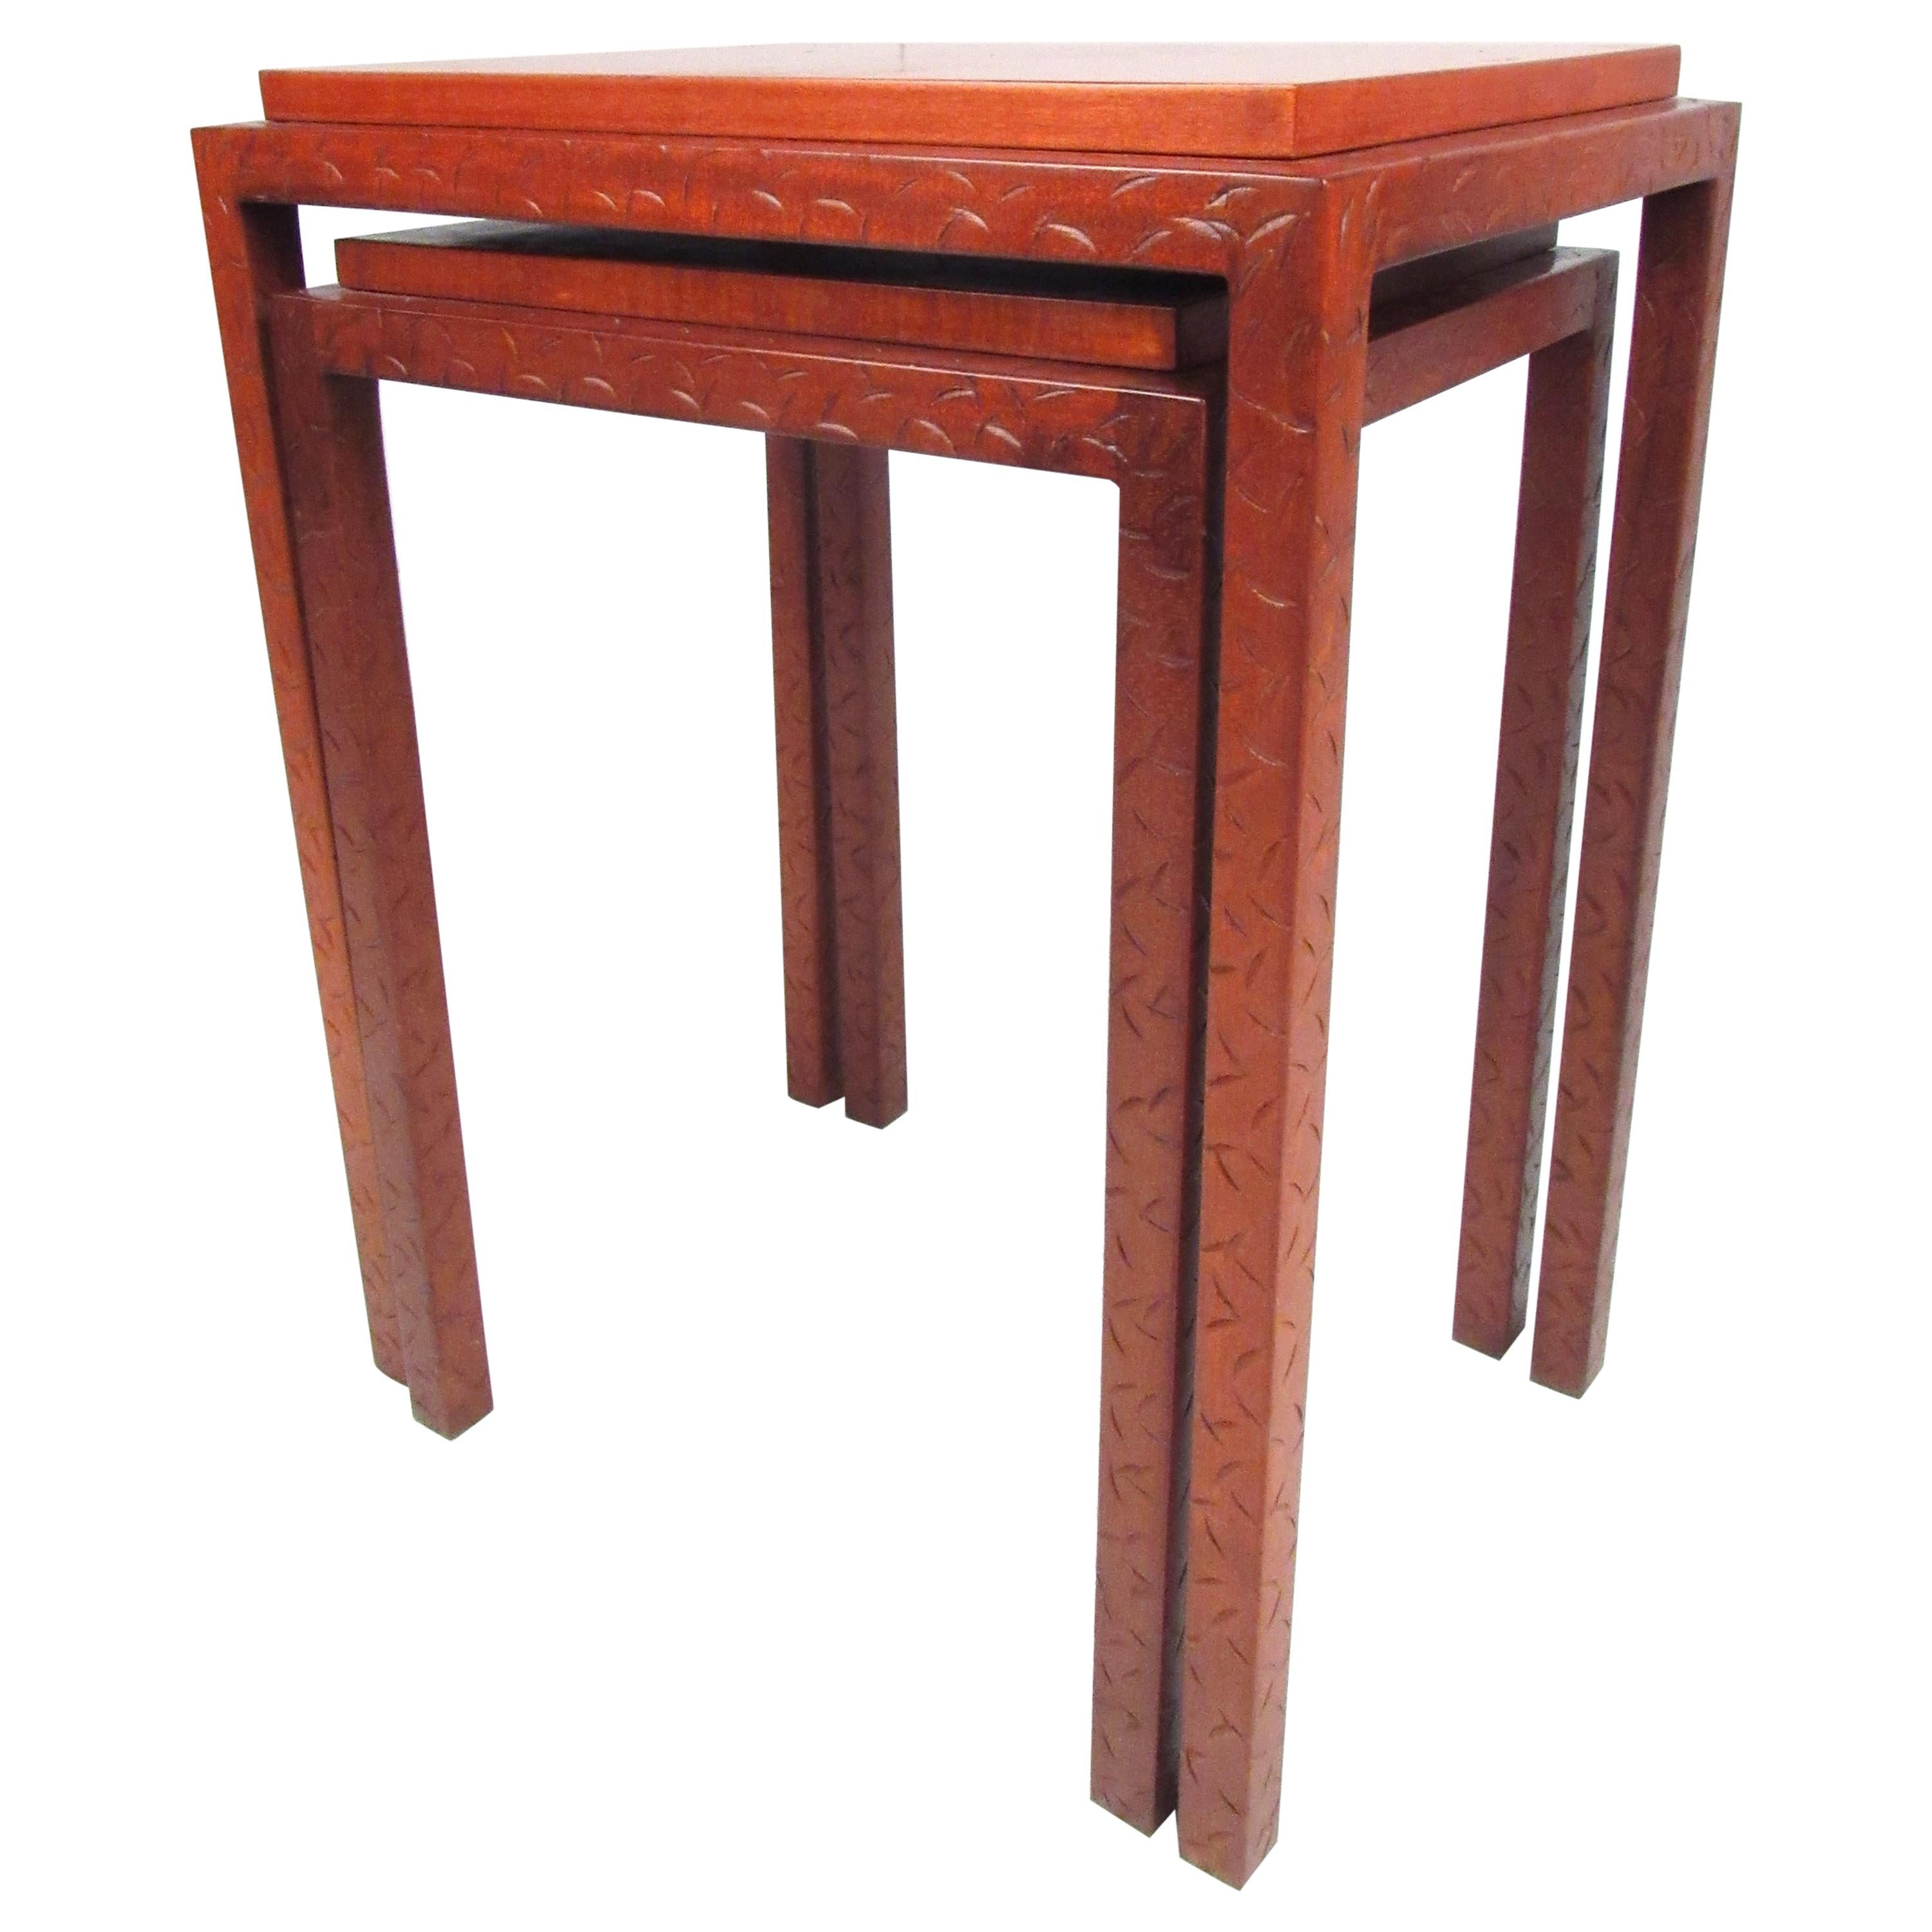 Midcentury Rosewood Nesting Tables